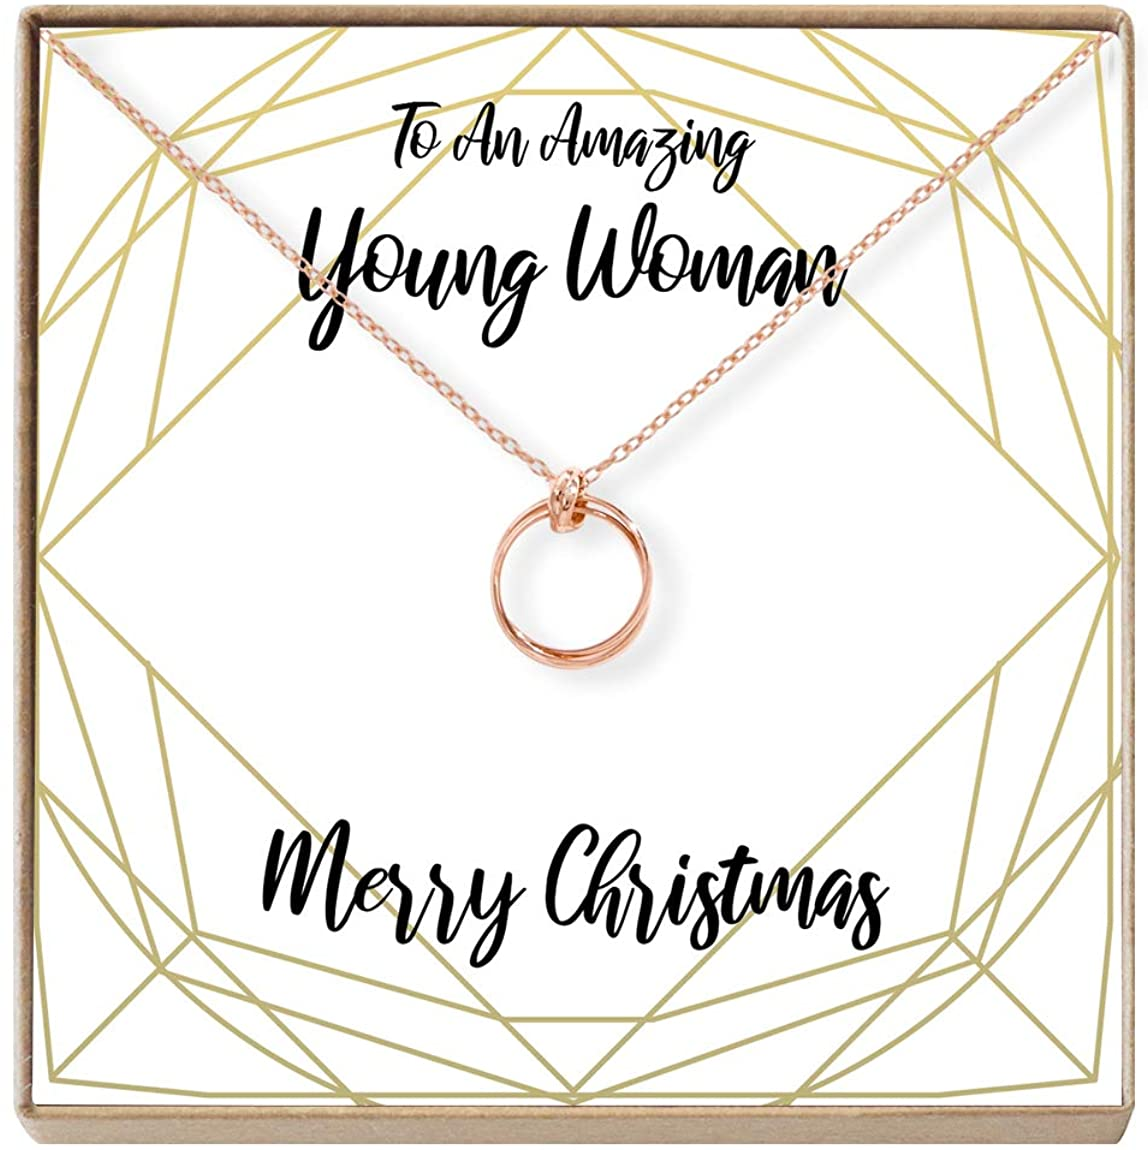 Dear Ava for Teen Necklace: Girl, Teenager, Preteen, Present, Holiday, 2 Linked Circles (Rose-Gold-Plated-Brass, NA)